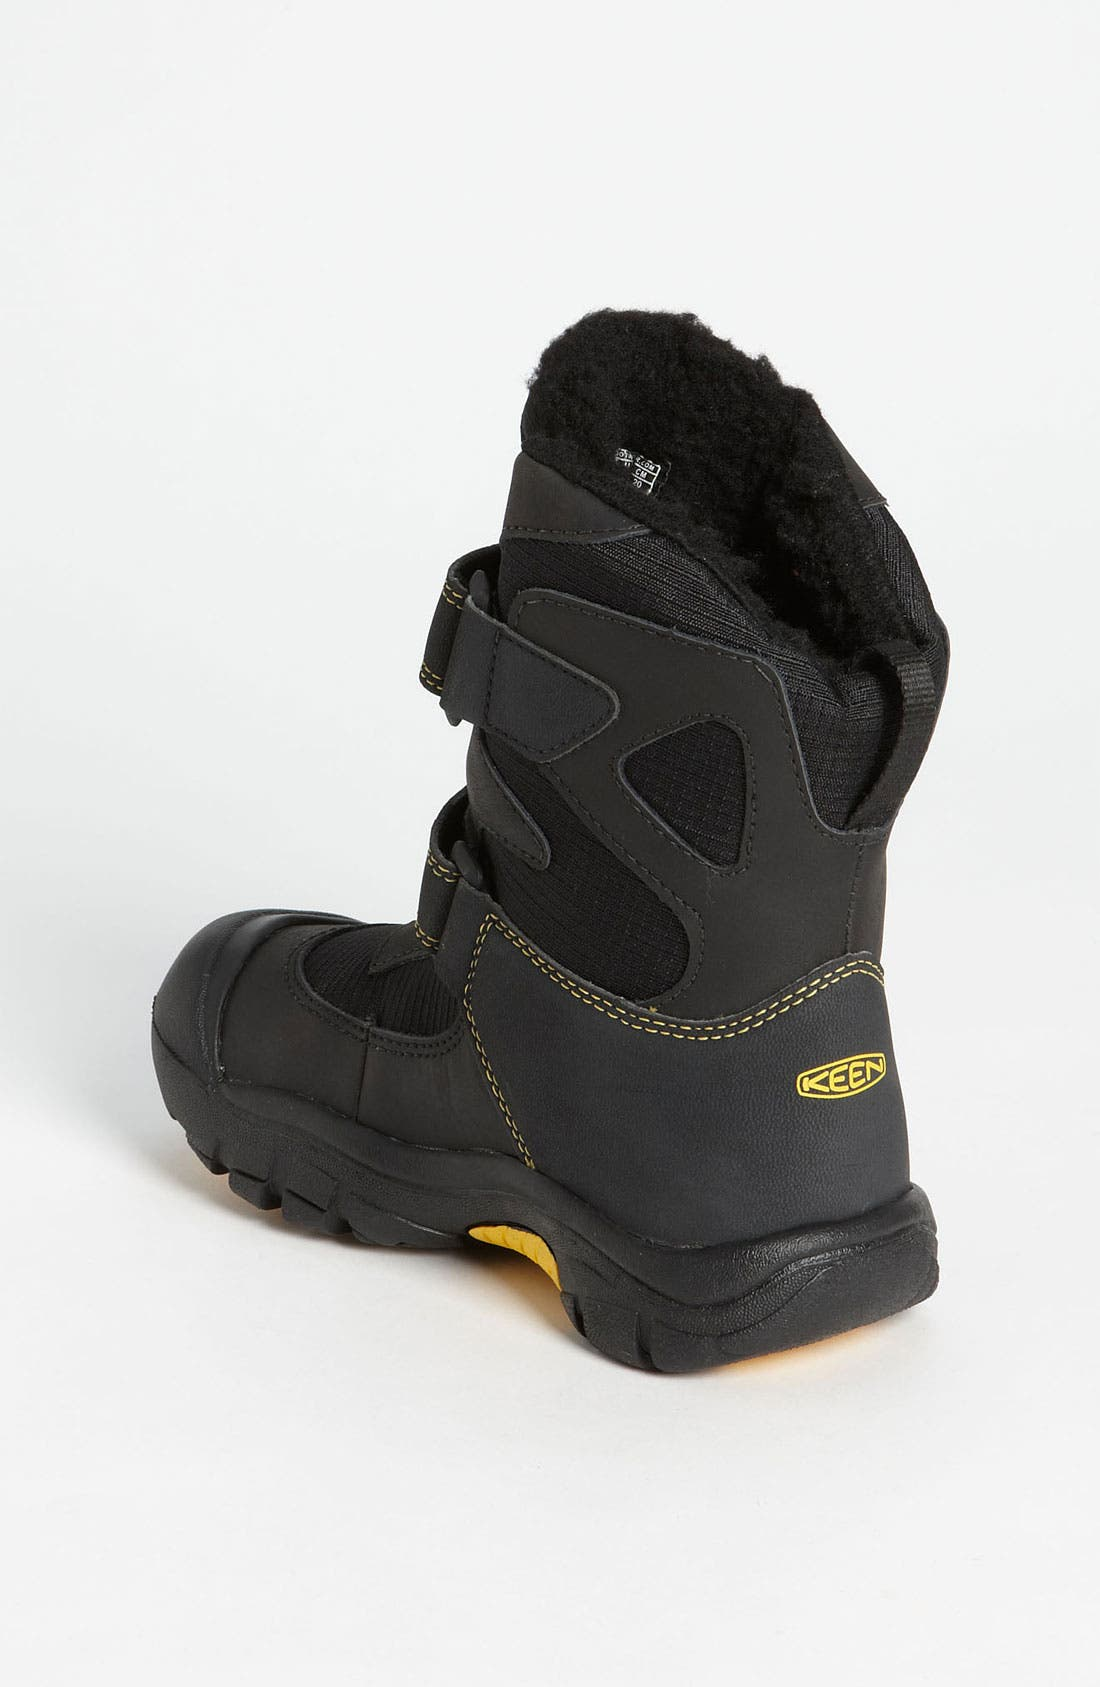 Alternate Image 2  - Keen 'Kalamazoo' Snow Boot (Toddler, Little Kid & Big Kid)